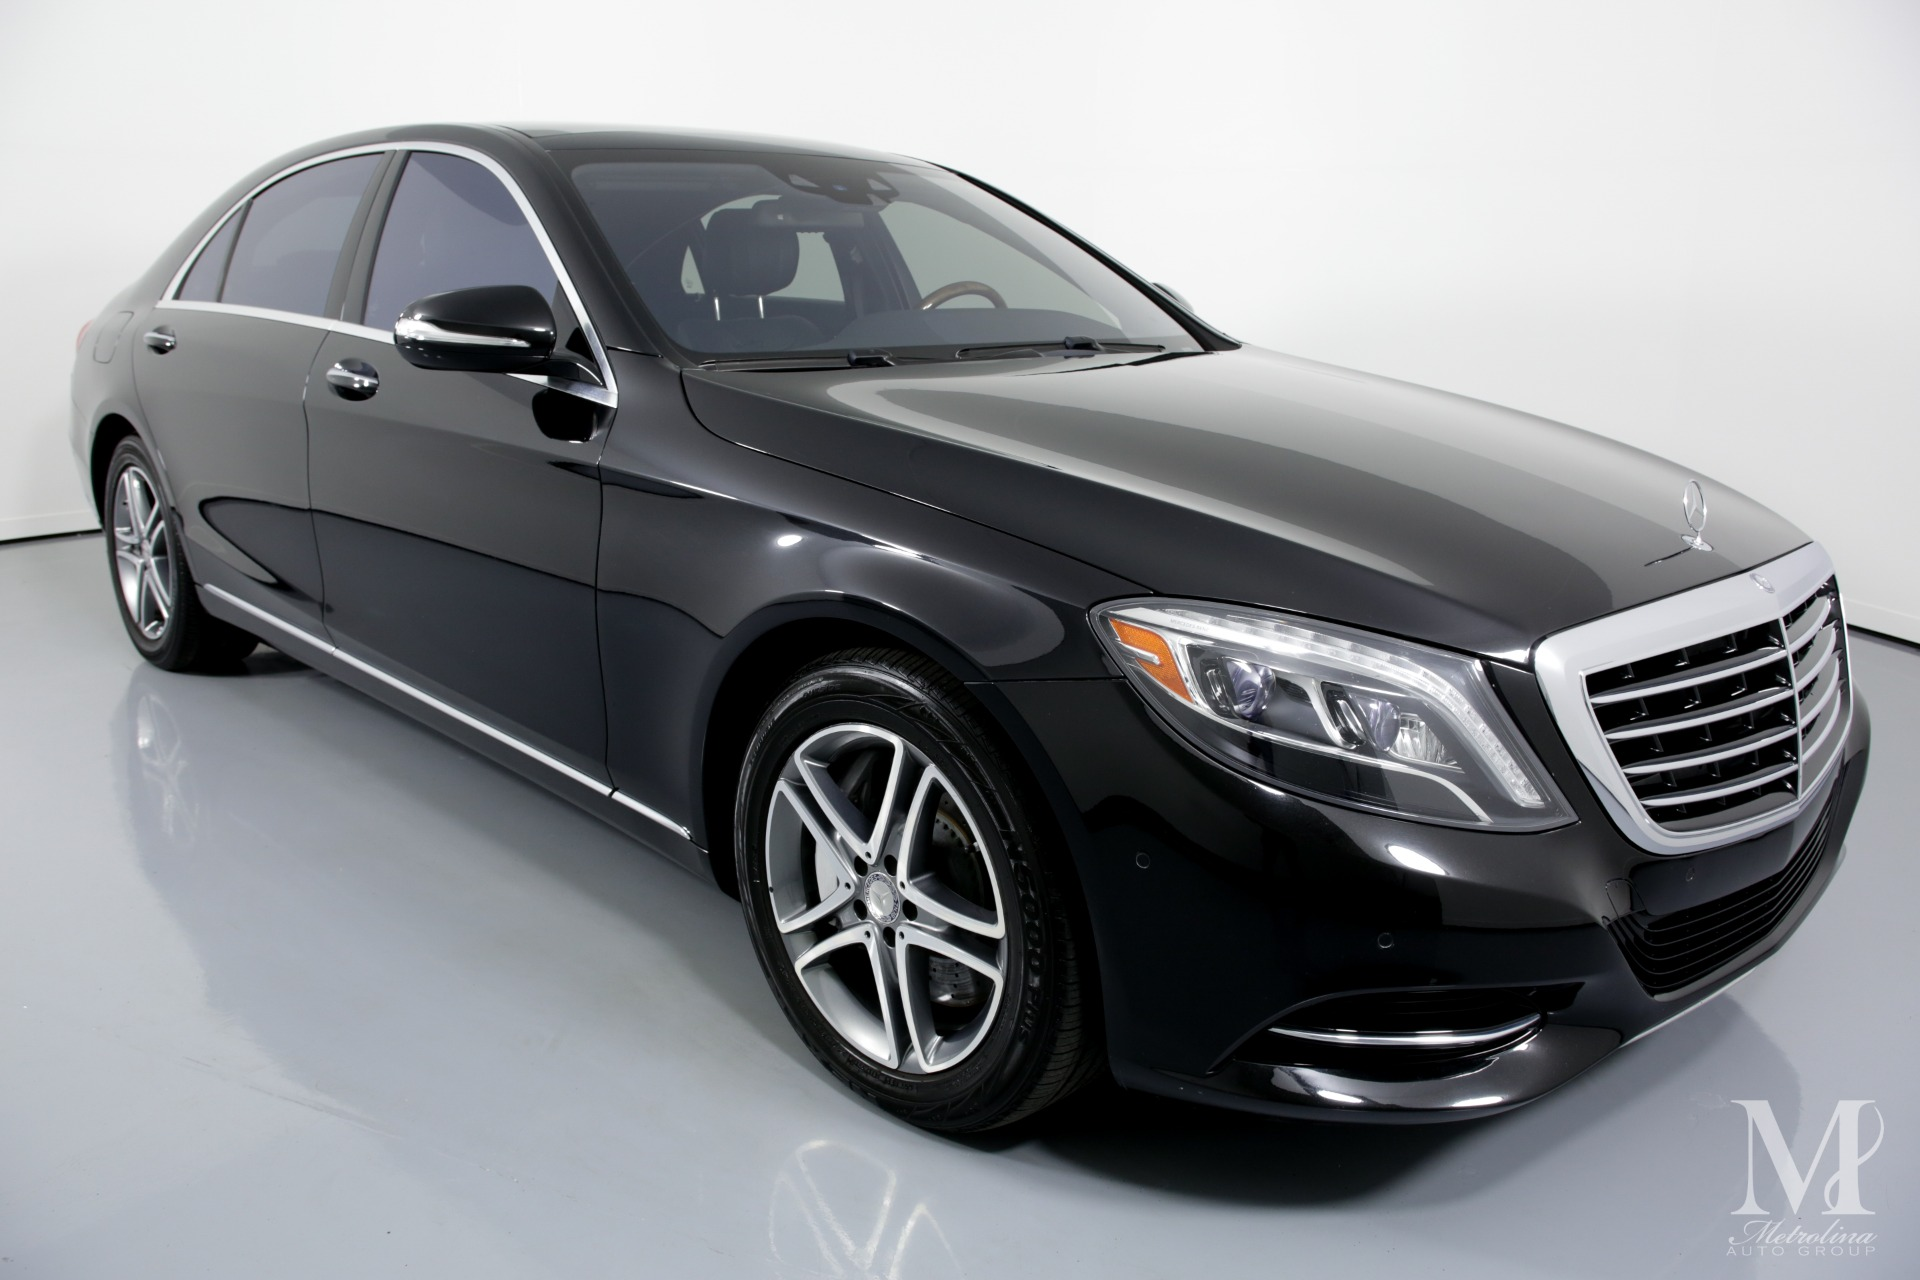 Used 2016 Mercedes-Benz S-Class S 550 4dr Sedan for sale $44,996 at Metrolina Auto Group in Charlotte NC 28217 - 2